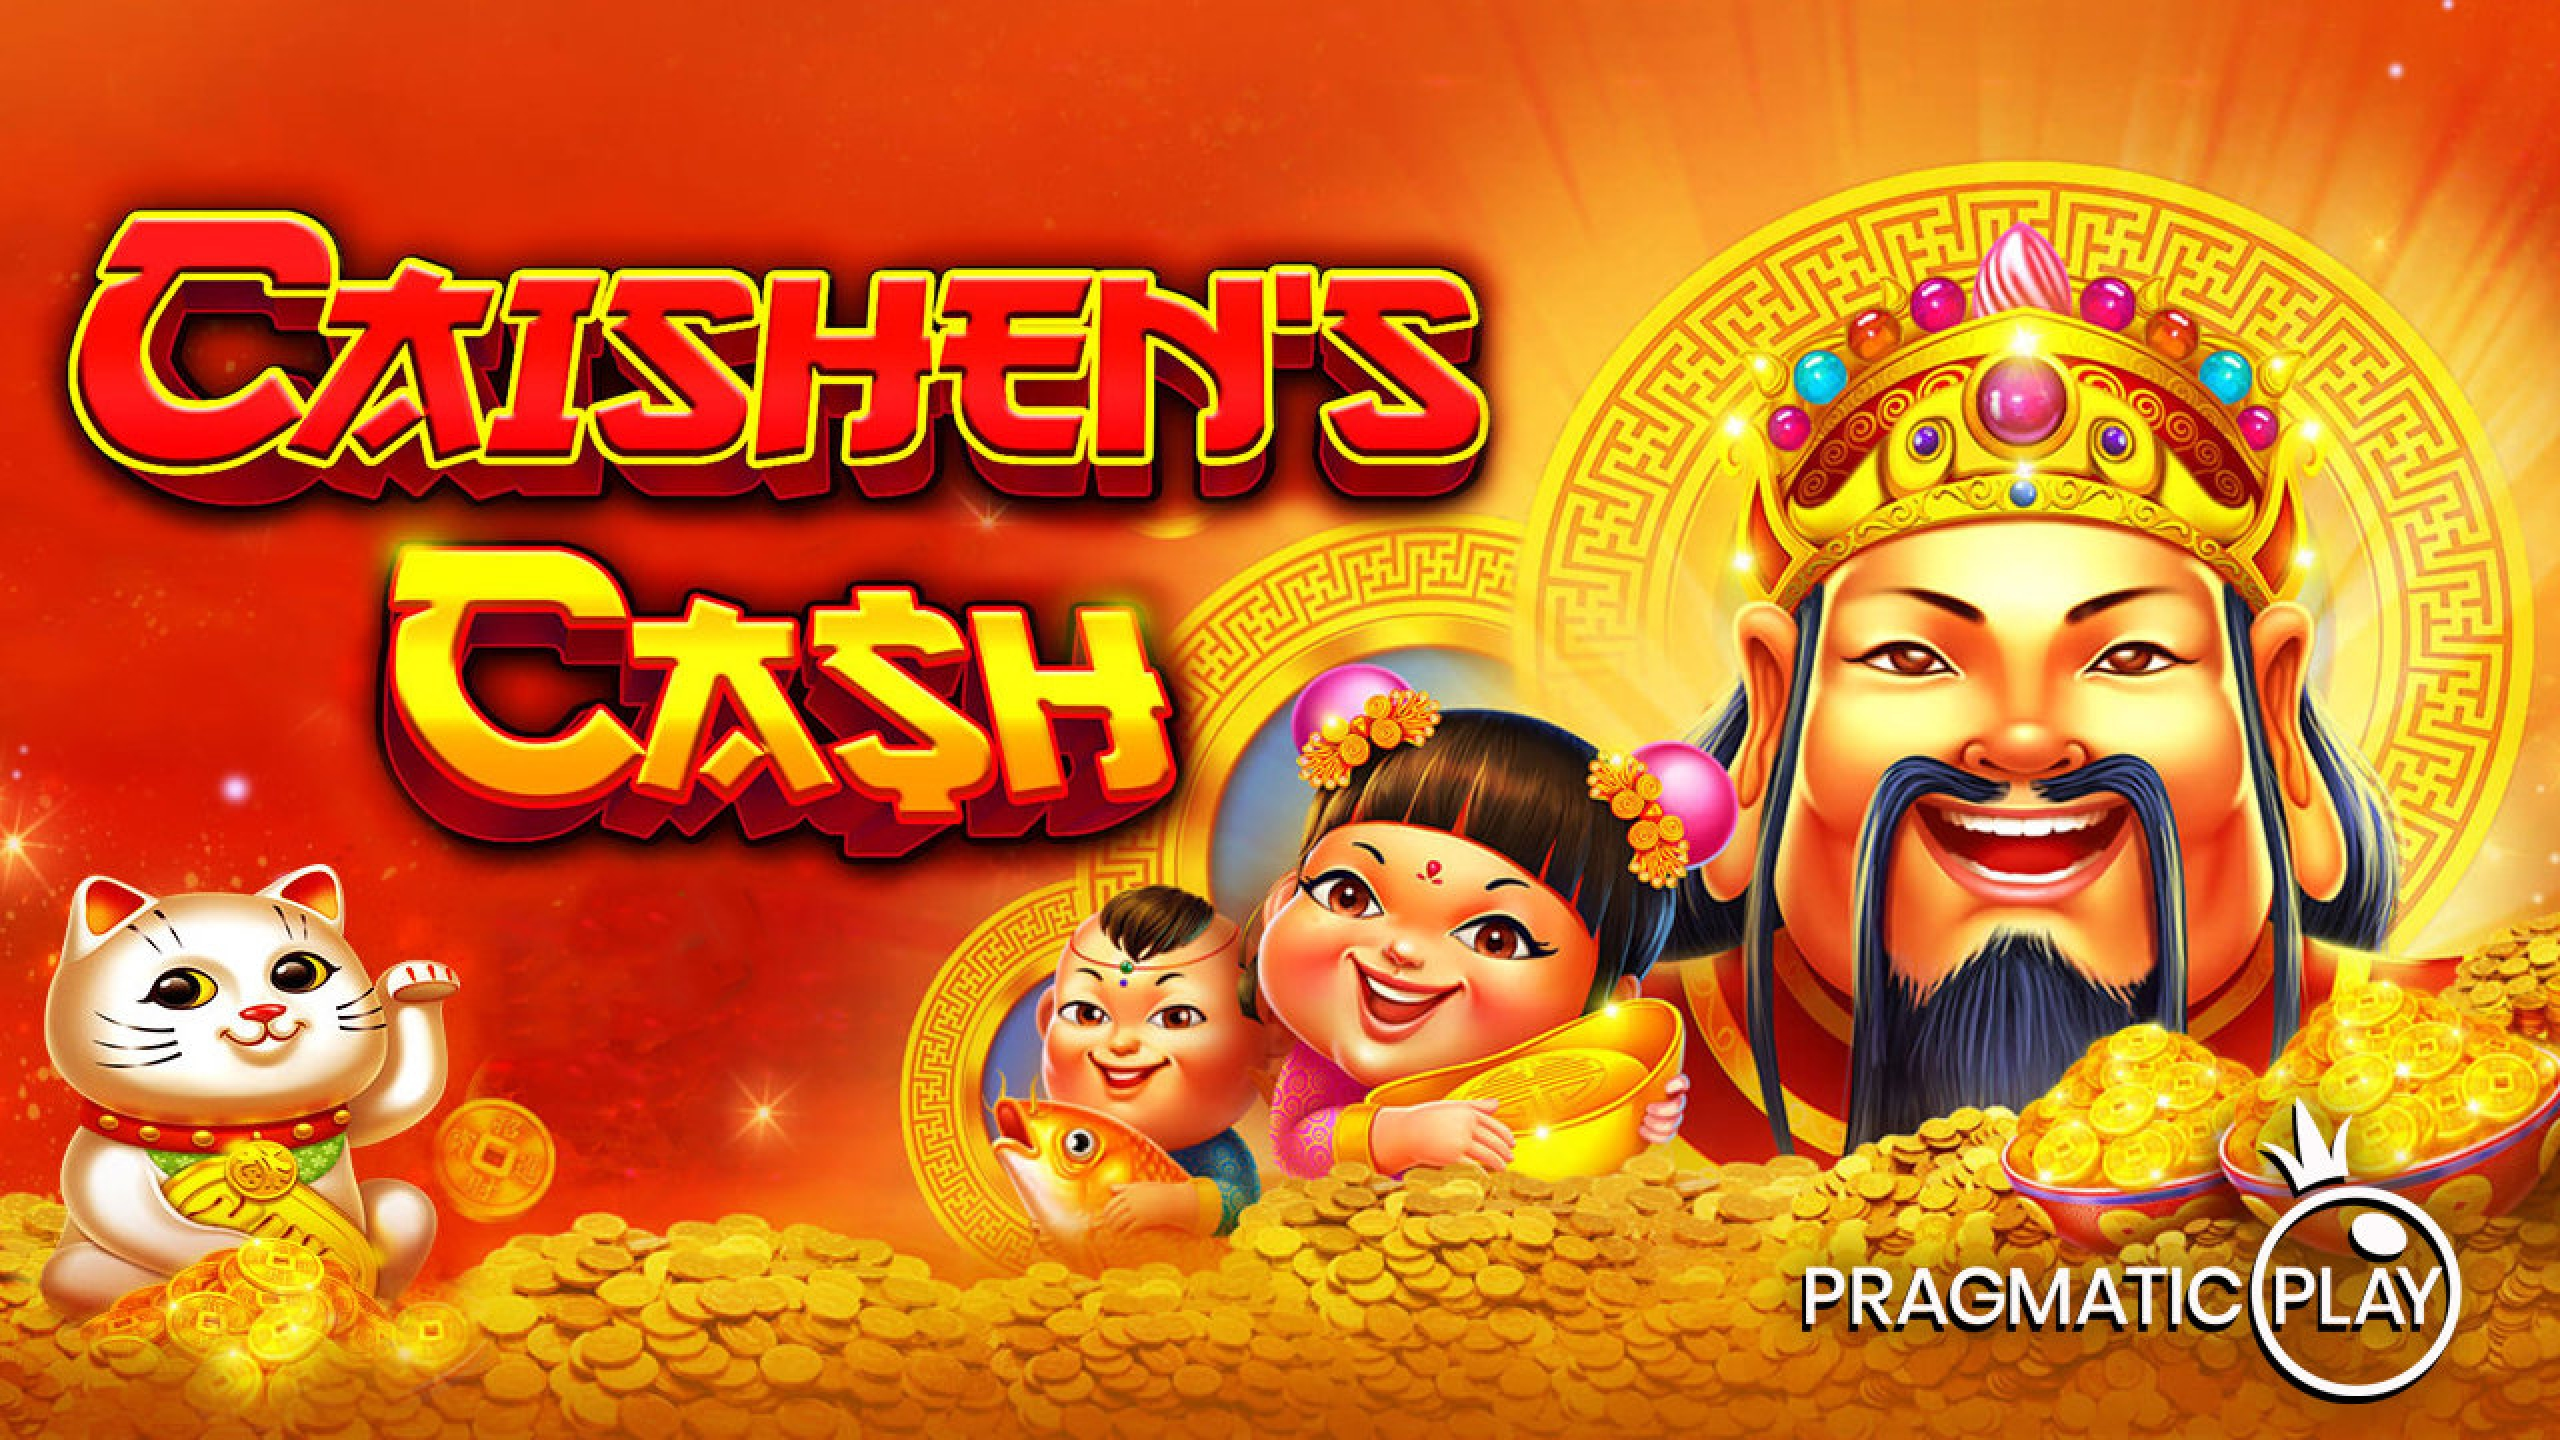 The Caishen's Cash Online Slot Demo Game by Pragmatic Play